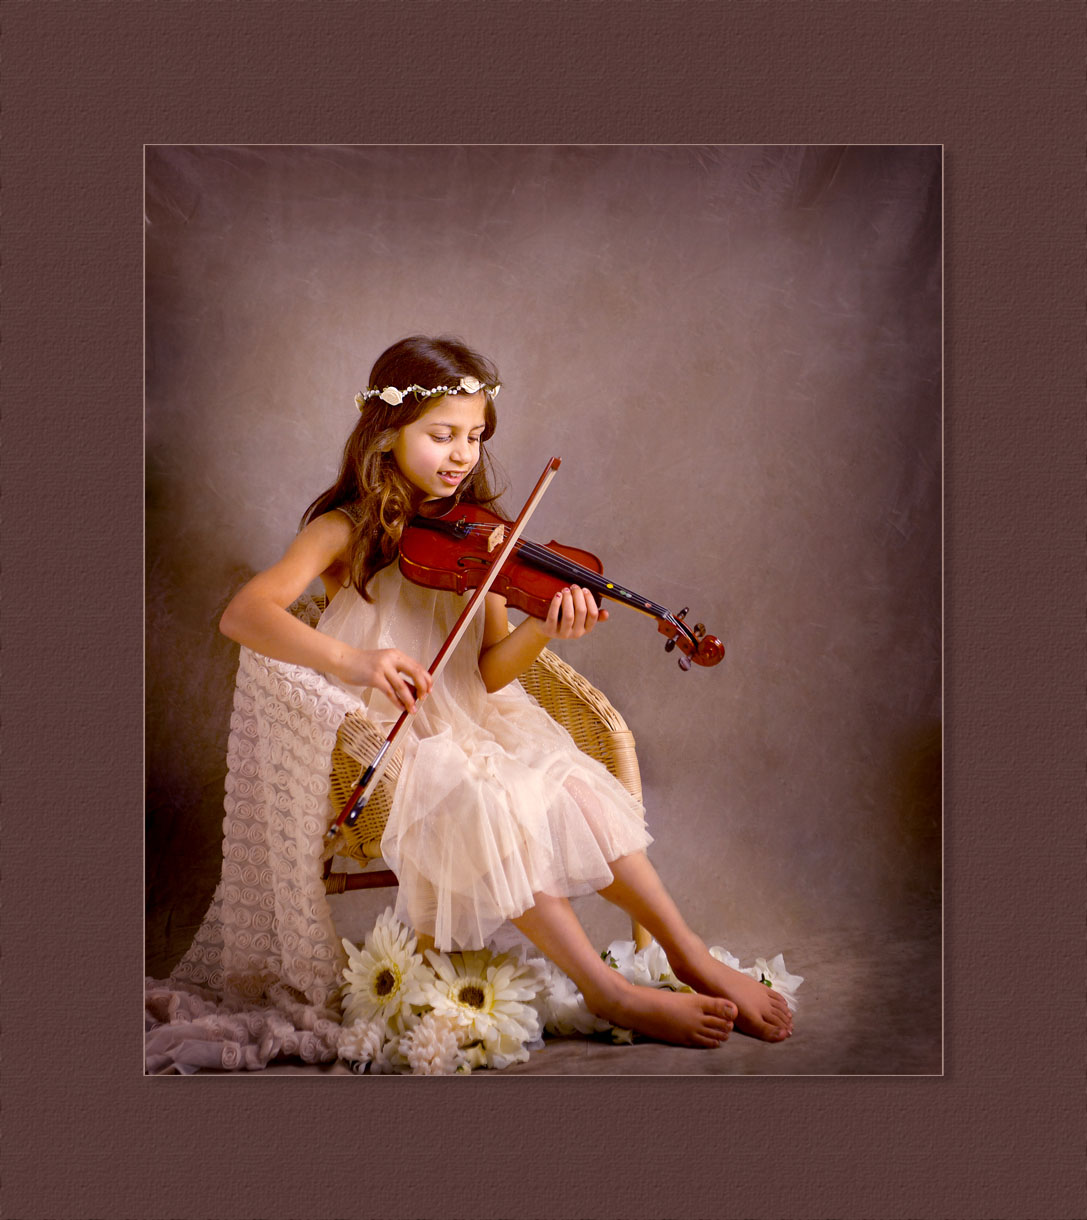 Girl with a violin vinatage style